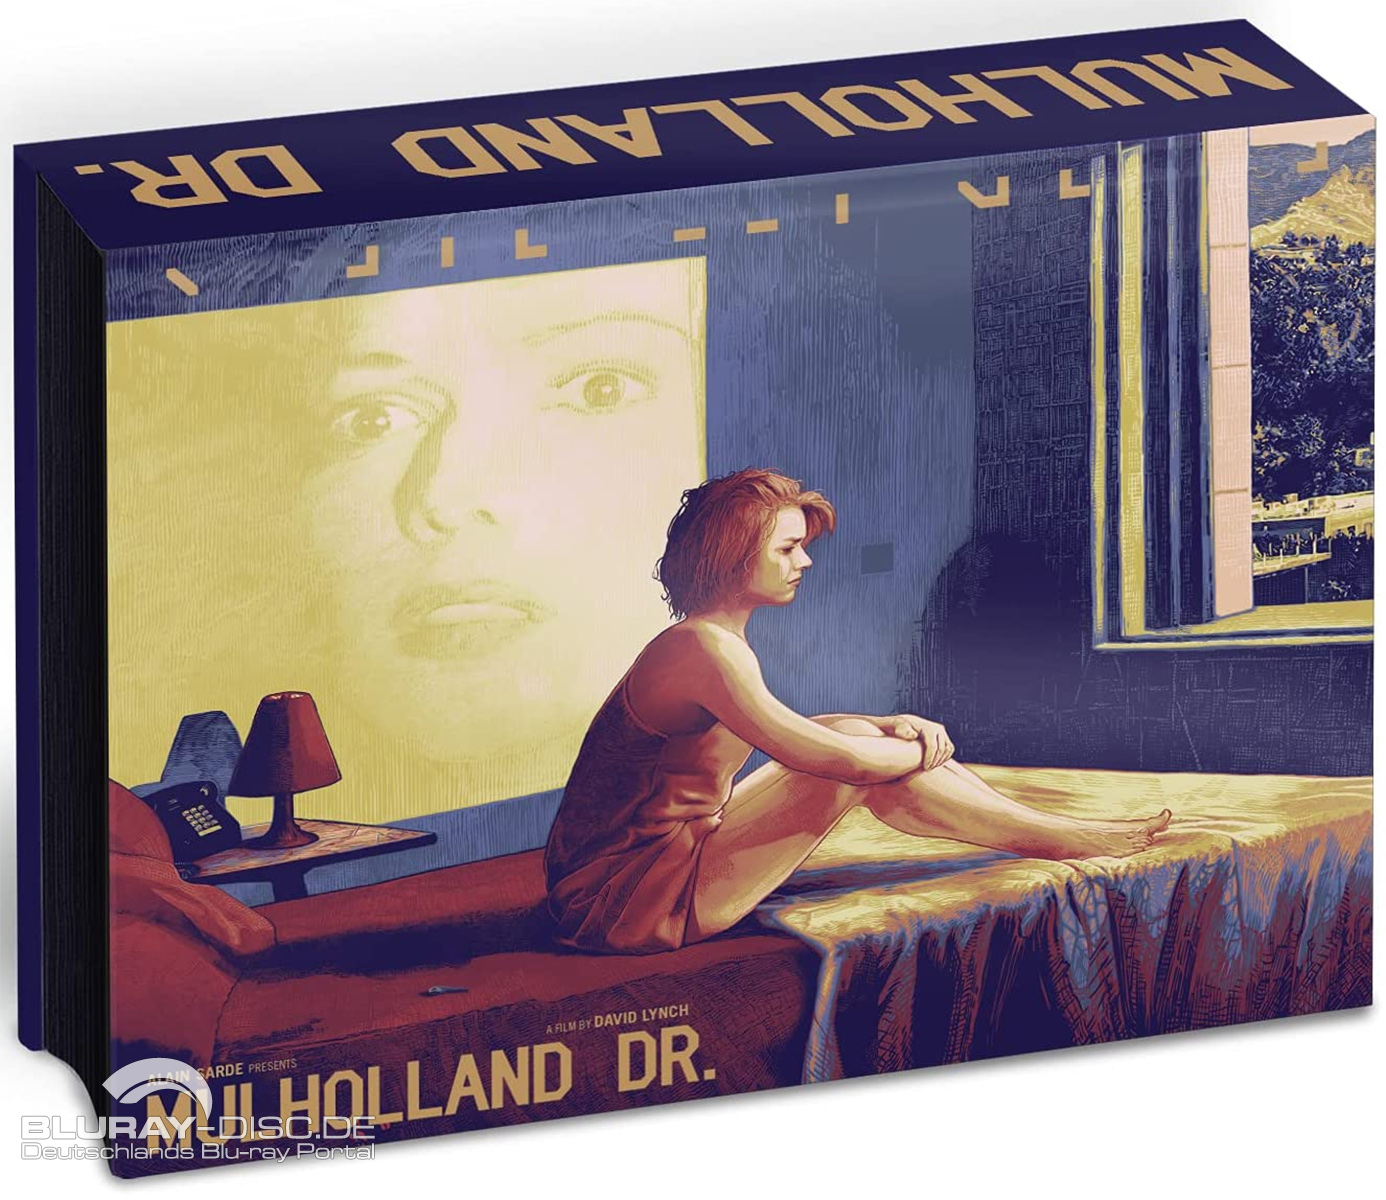 Mulholland_Drive_Galerie_Limited_Collectors_Edition_02.jpg